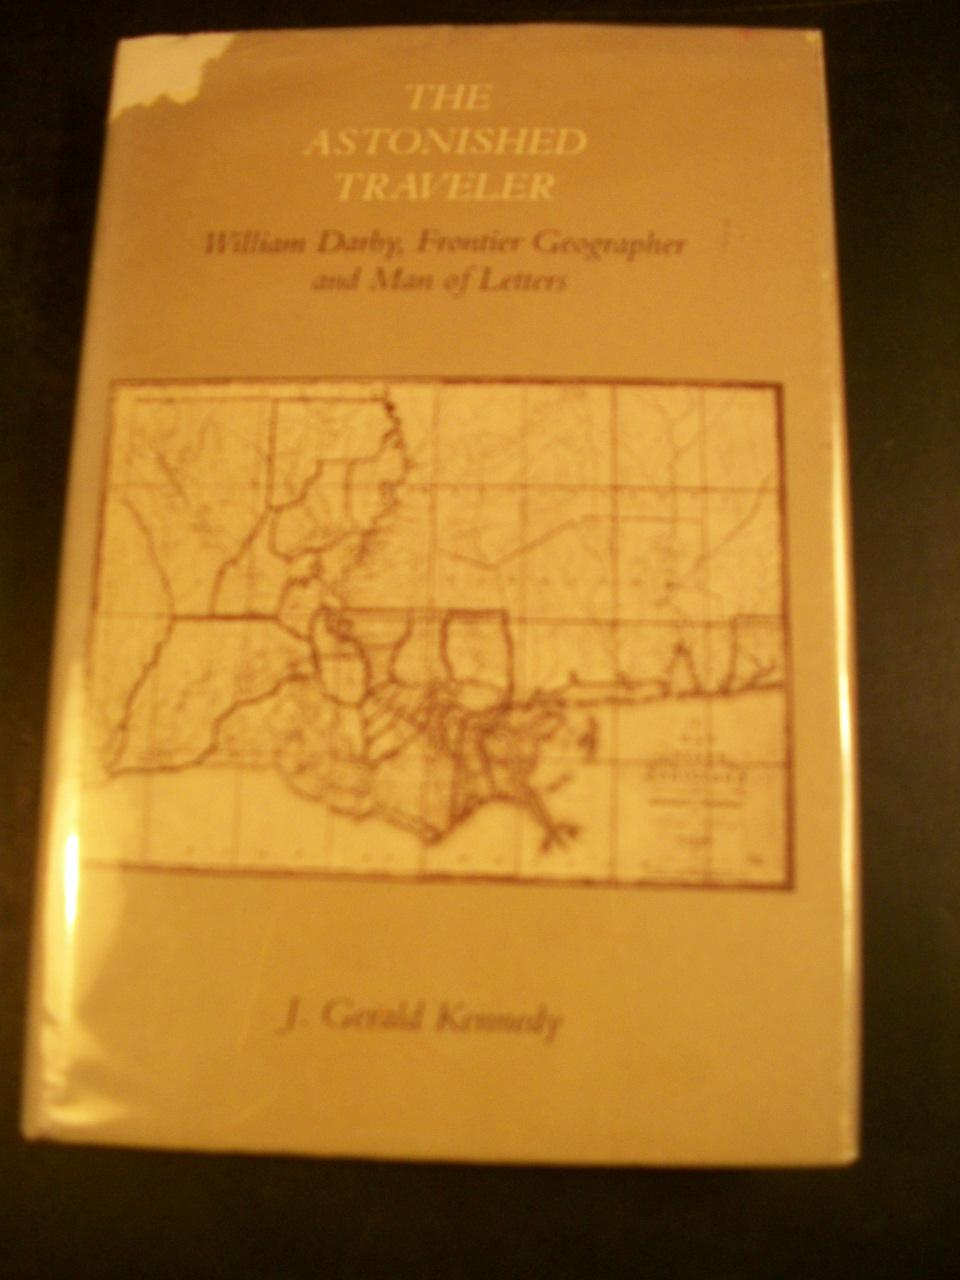 The Astonished Traveler: William Darby Frontier Geographer and Man of Letters - Kennedy, J. Gerald